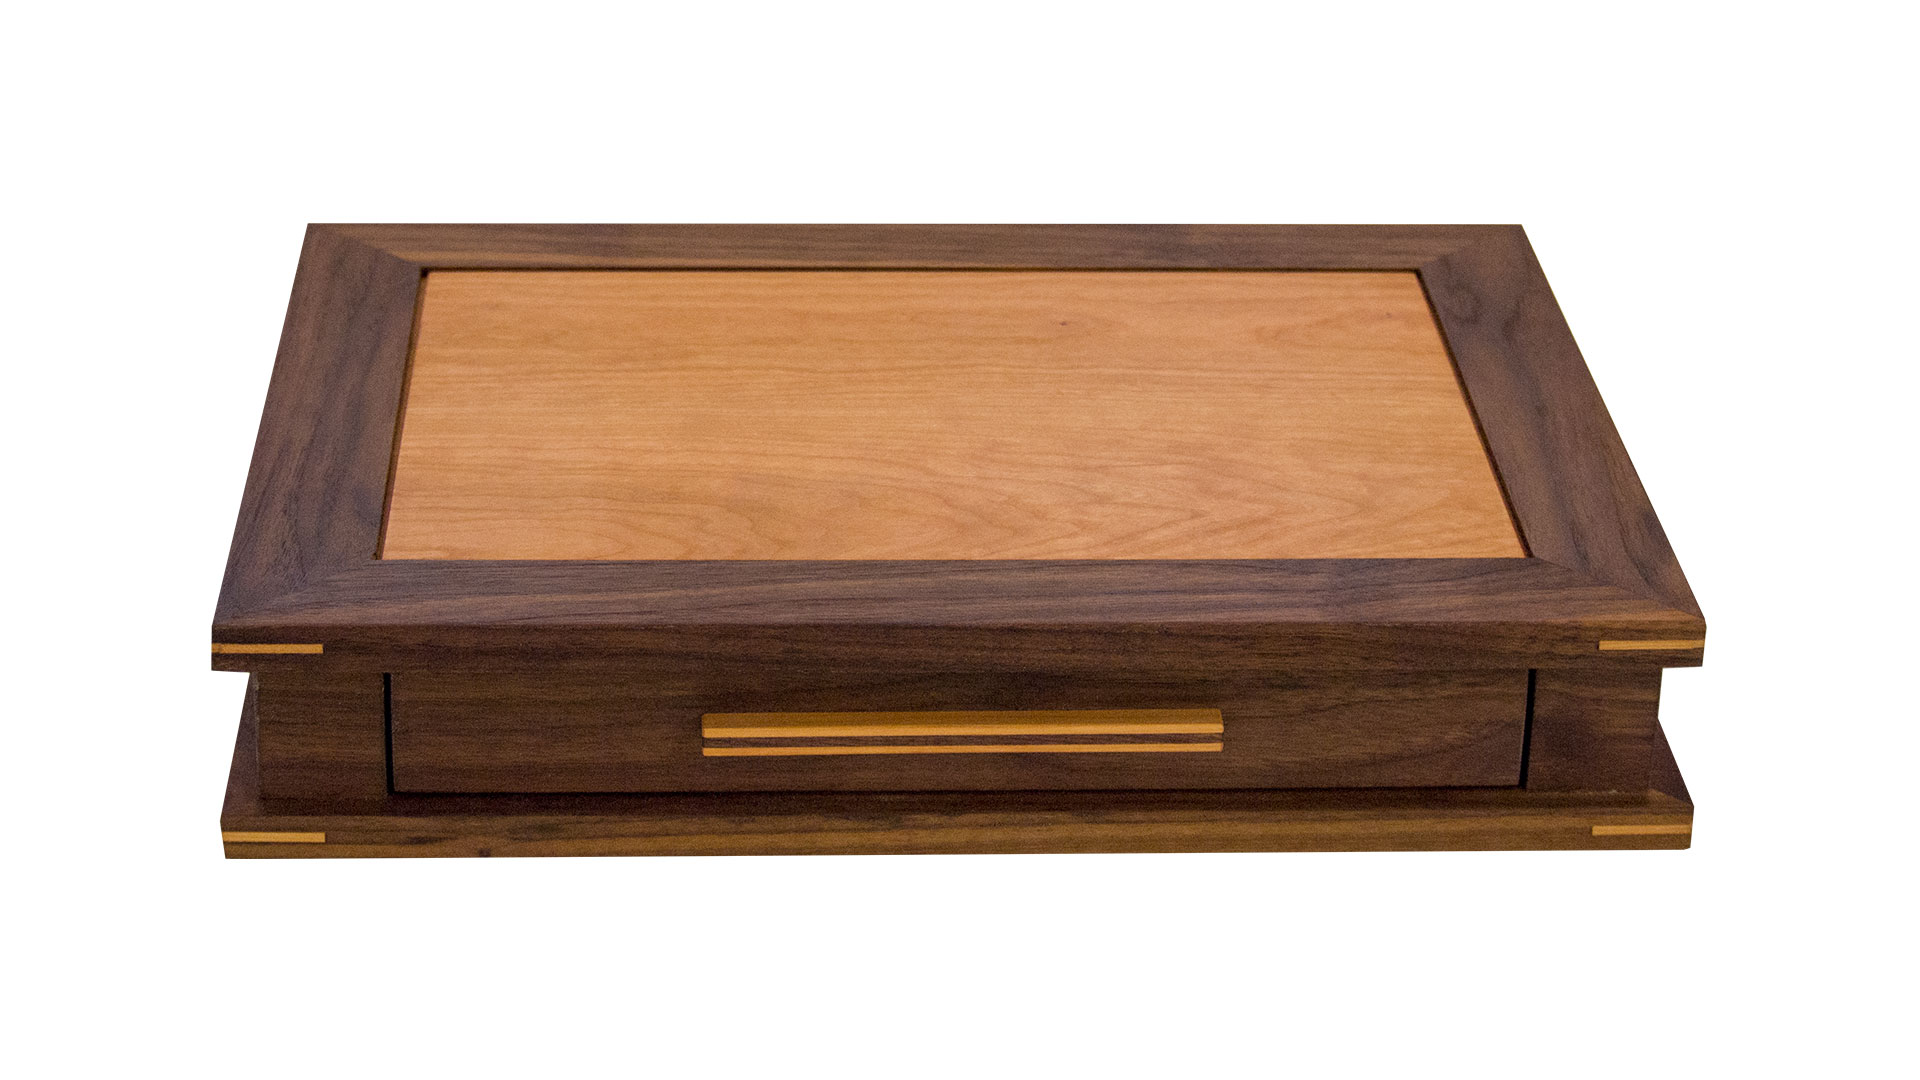 watch box JC - Available with 1, 2 or 3 velvet-lined drawers. Non-operating lid. Can house 4-24 watches depending on the configuration you choose.As shown: Walnut and CherryDimensions: 17-1/2W x 13D x 7H (3-drawer)Price: from $279